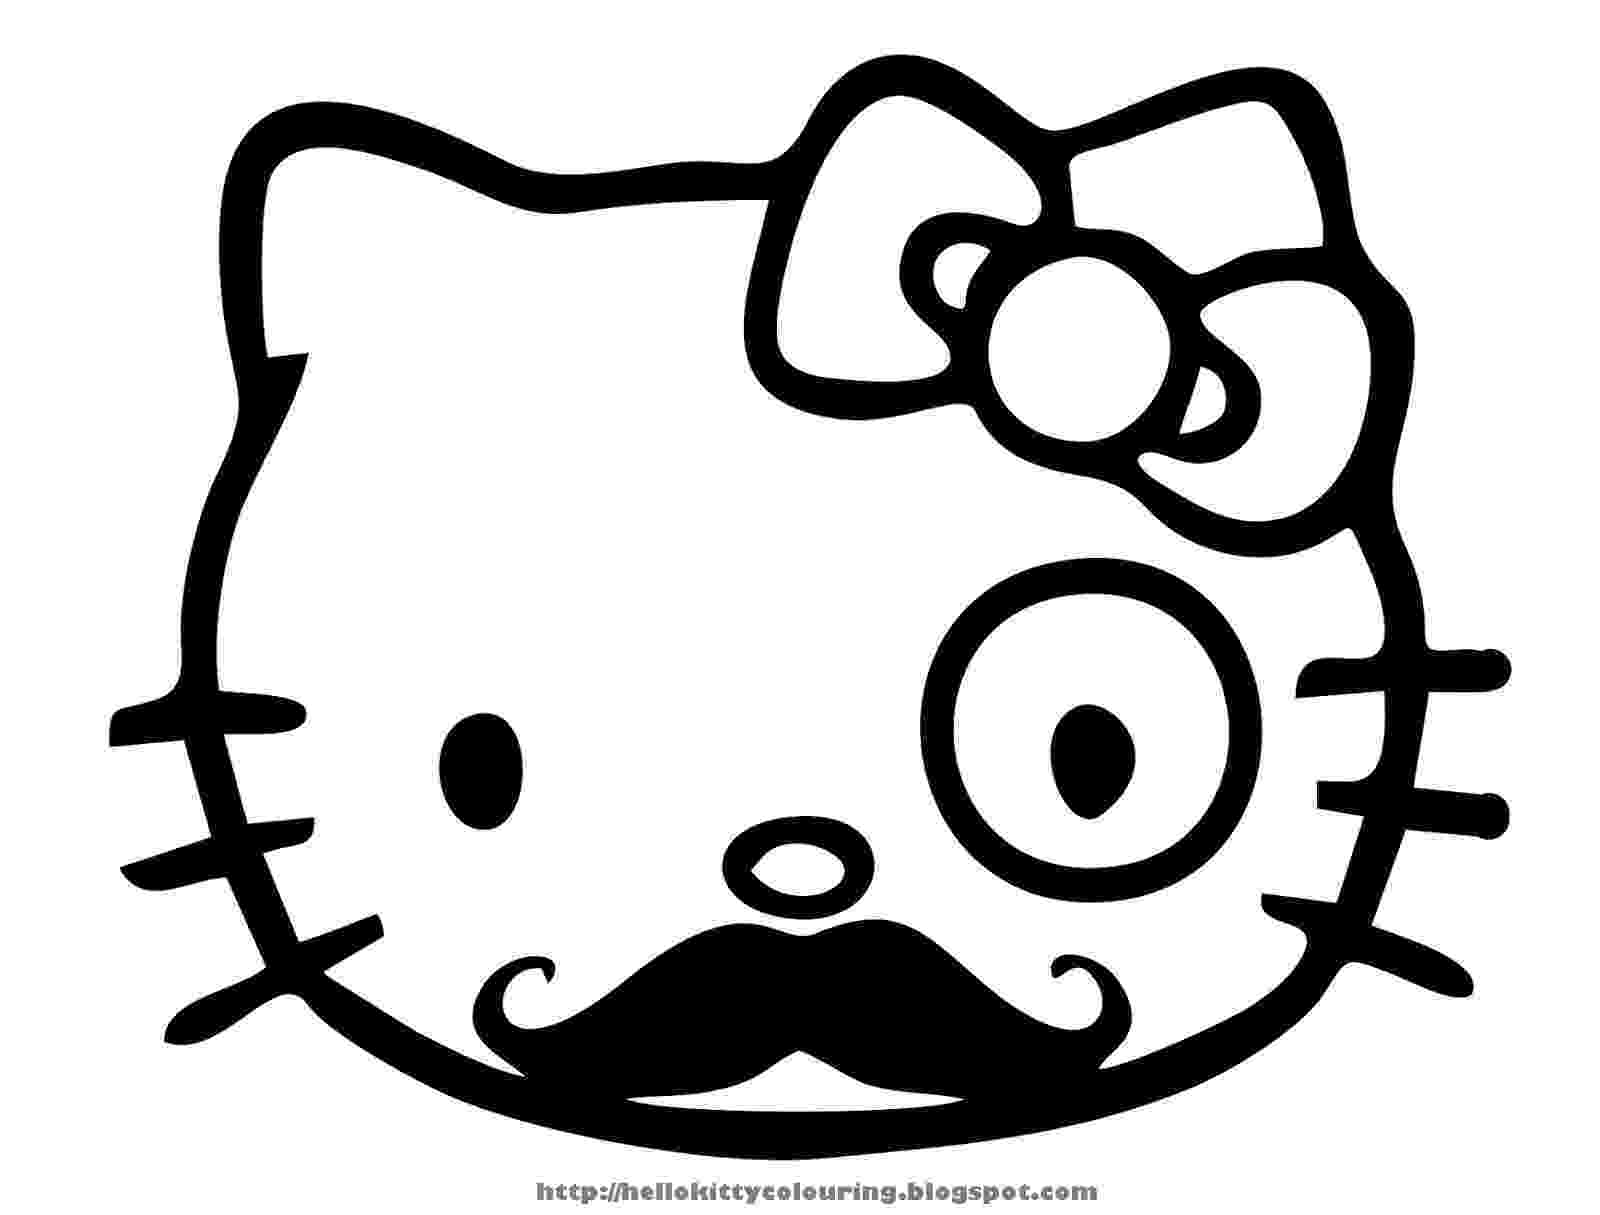 hello kitty color sheets hello kitty coloring pages getcoloringpagescom sheets hello color kitty